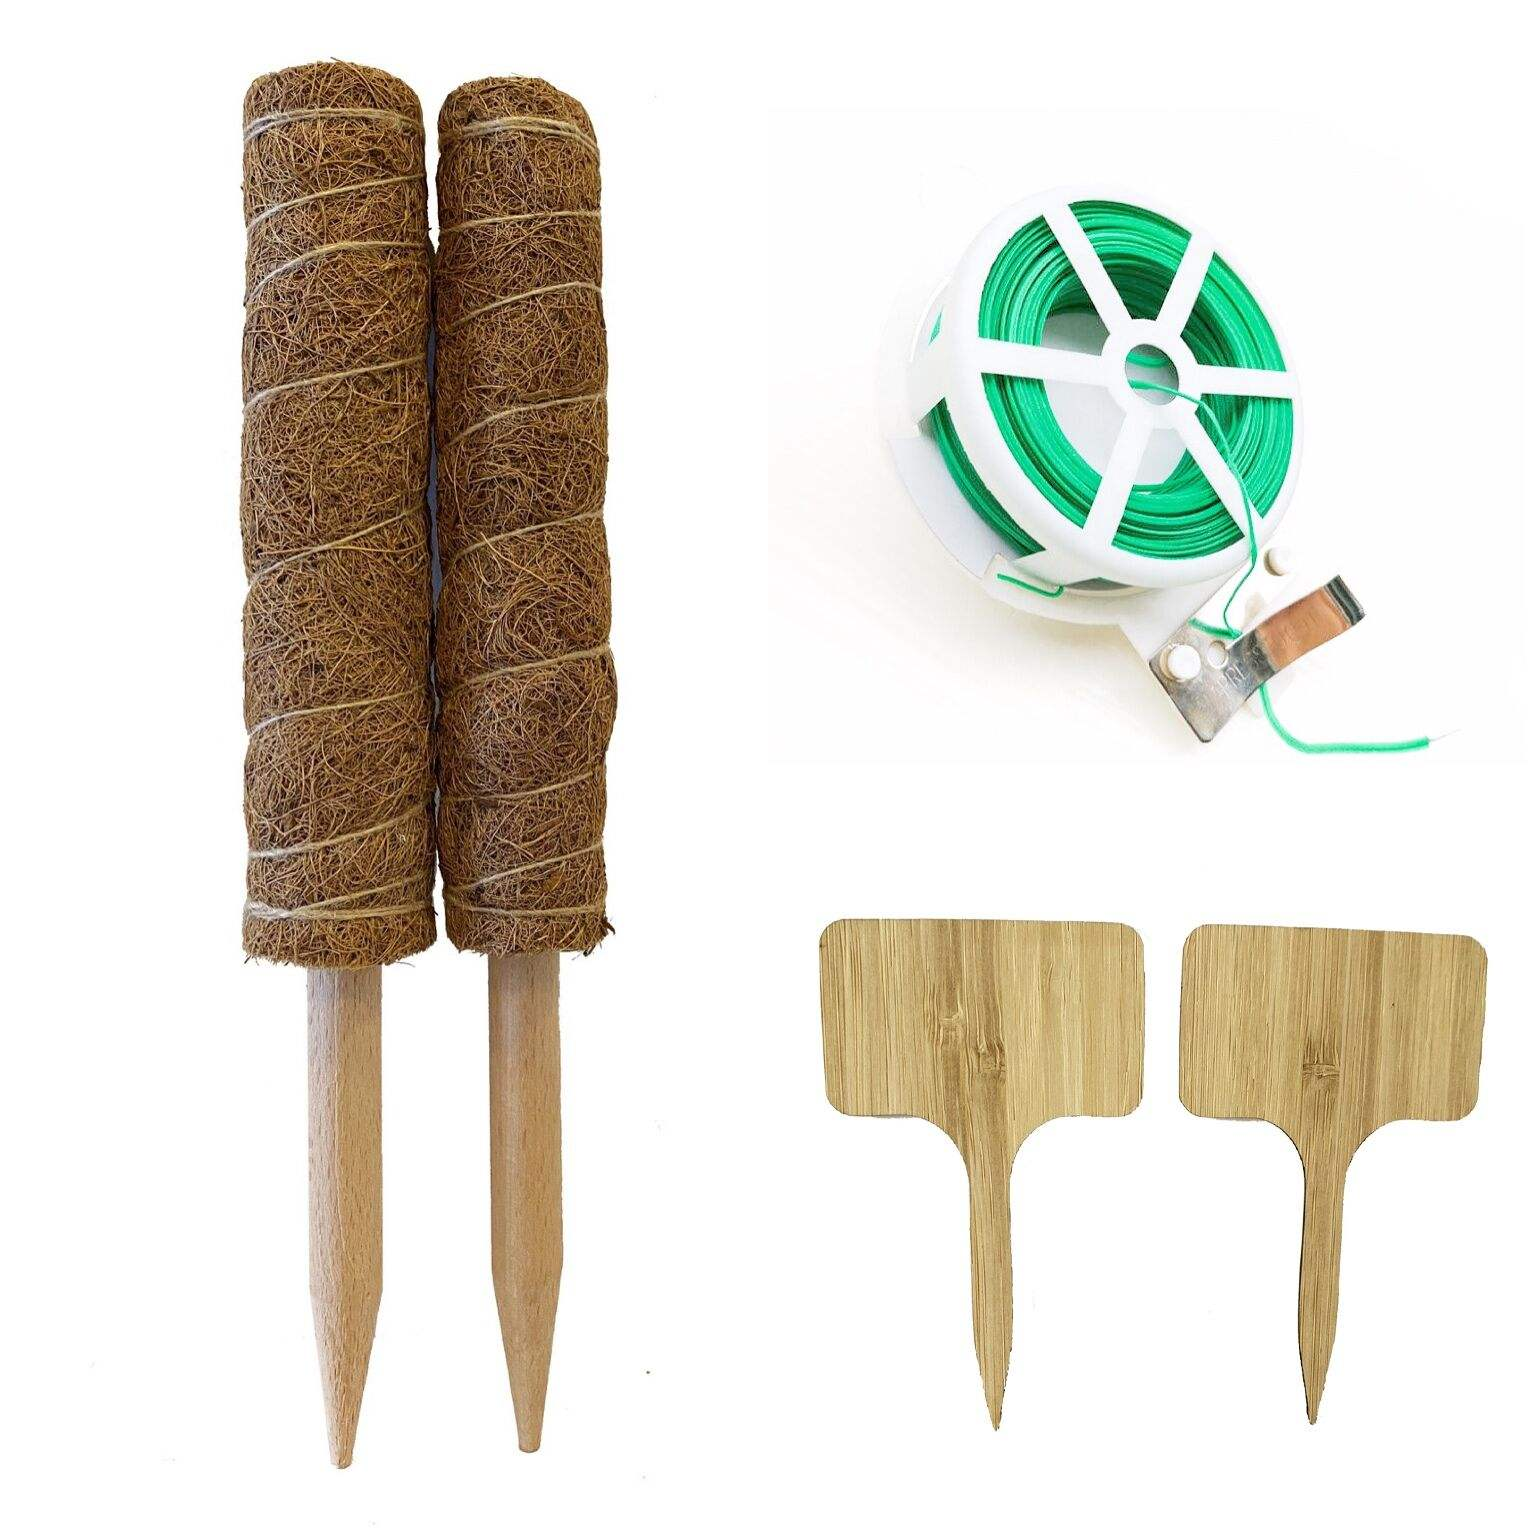 12 inches Biodegradable coco plants poles with variety moss pole accessories like totem pole support